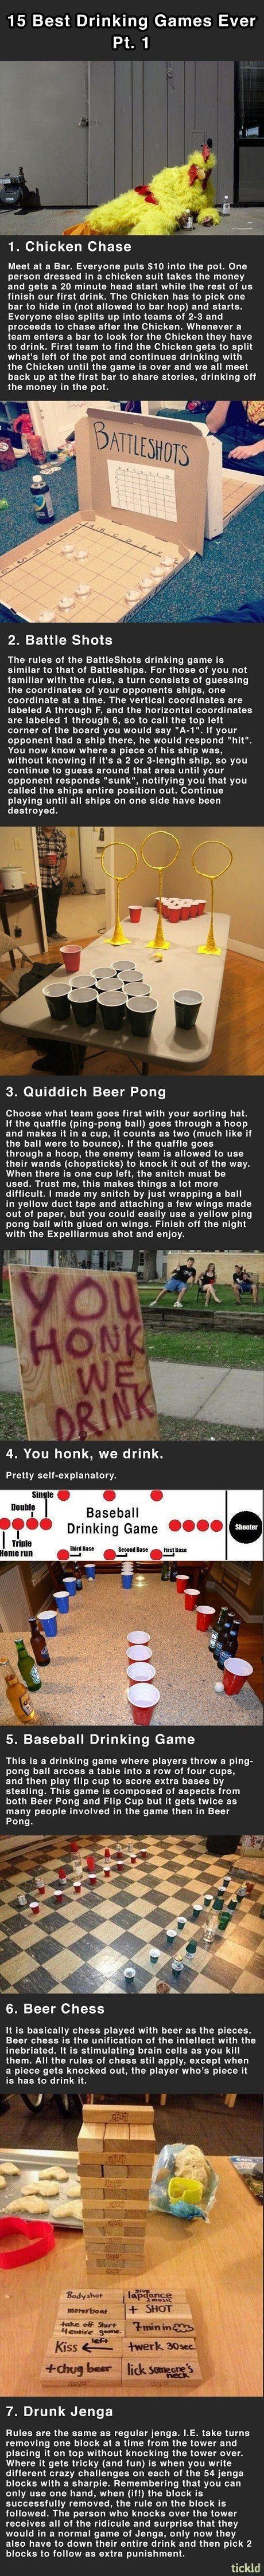 Drinking games drinking and best drinking games on pinterest